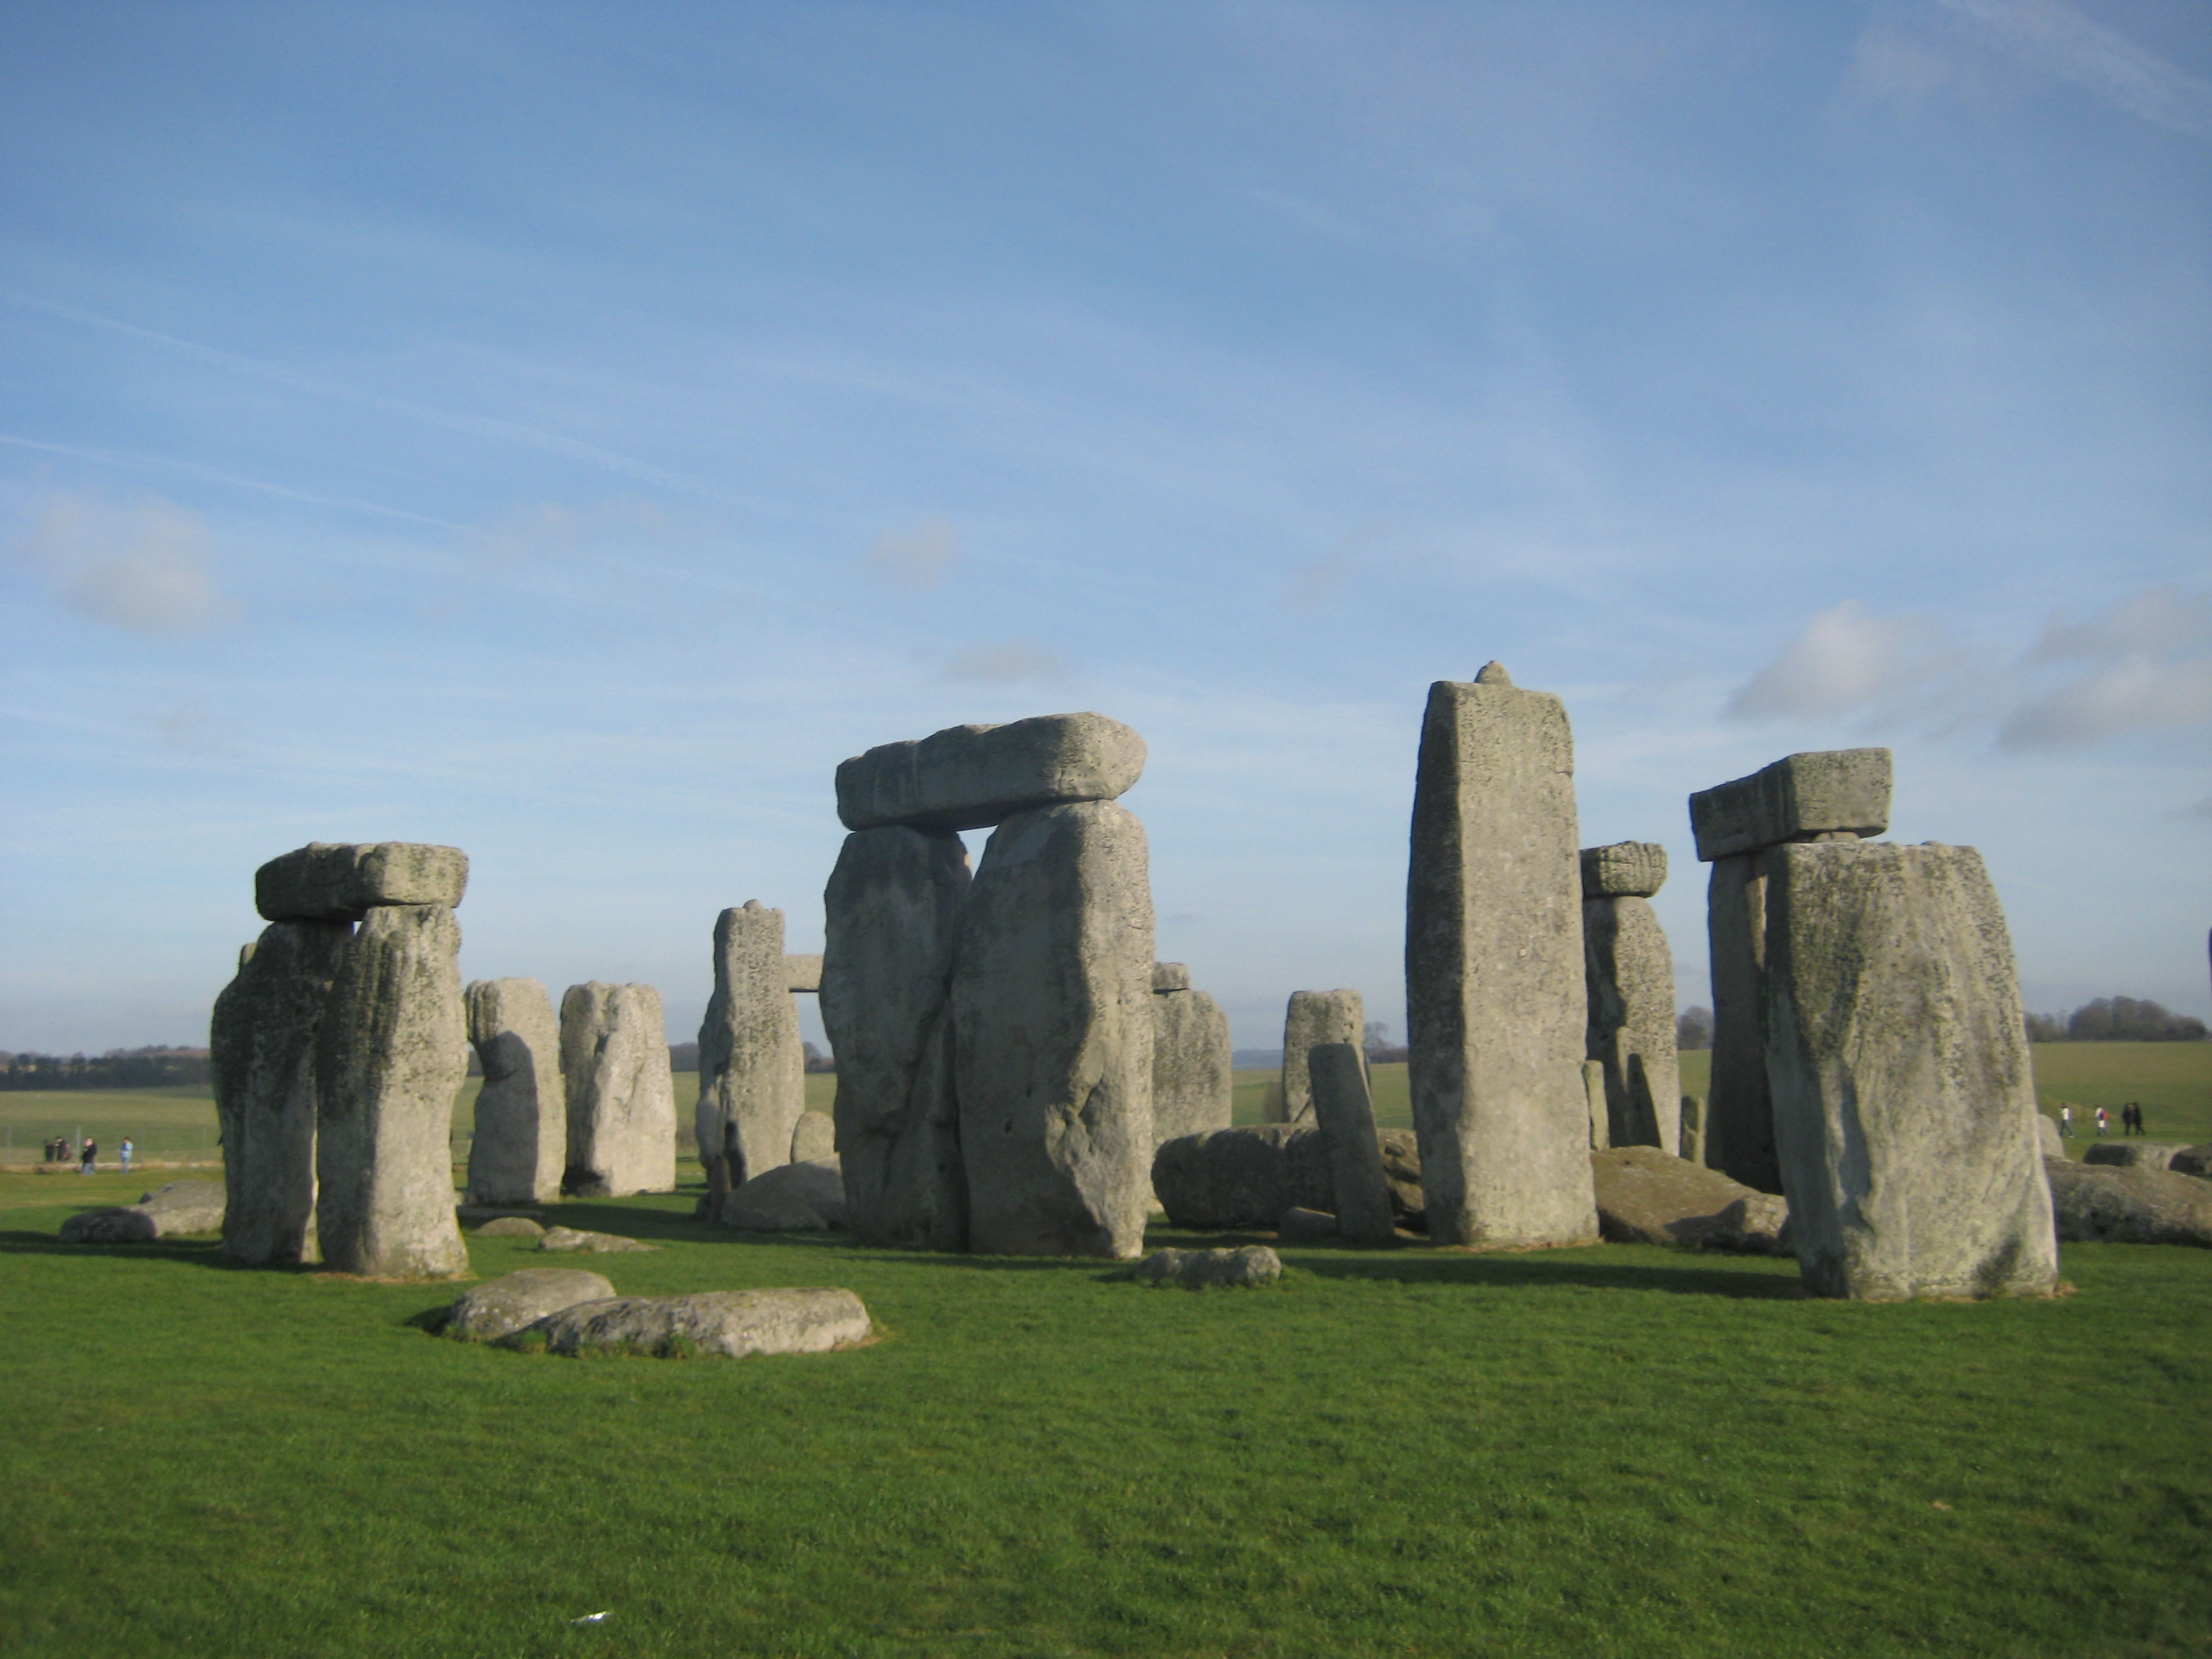 https://upload.wikimedia.org/wikipedia/commons/3/35/Stonehenge_on_27.01.08.jpg